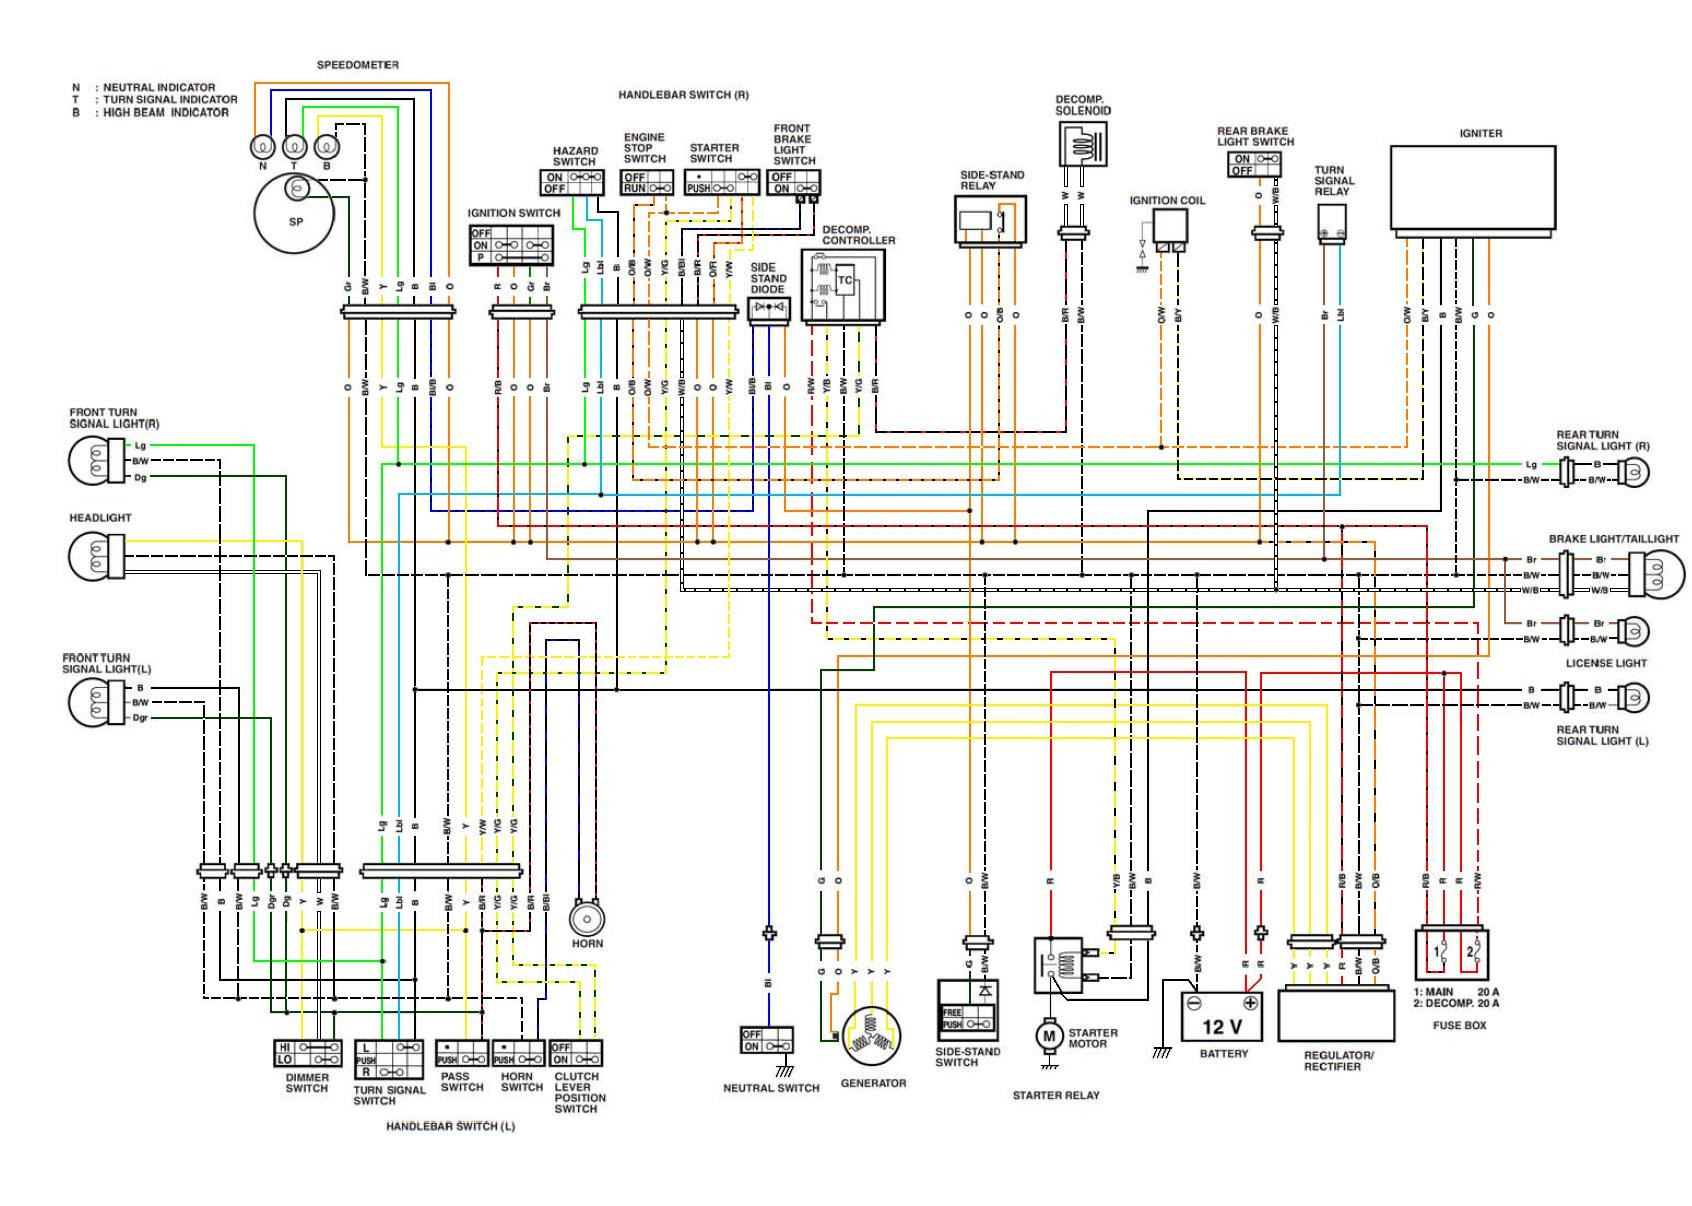 Wiring Diagram For A 1975 Harley Davidson Flh Library 1978 Golf Cart Download Image 1974